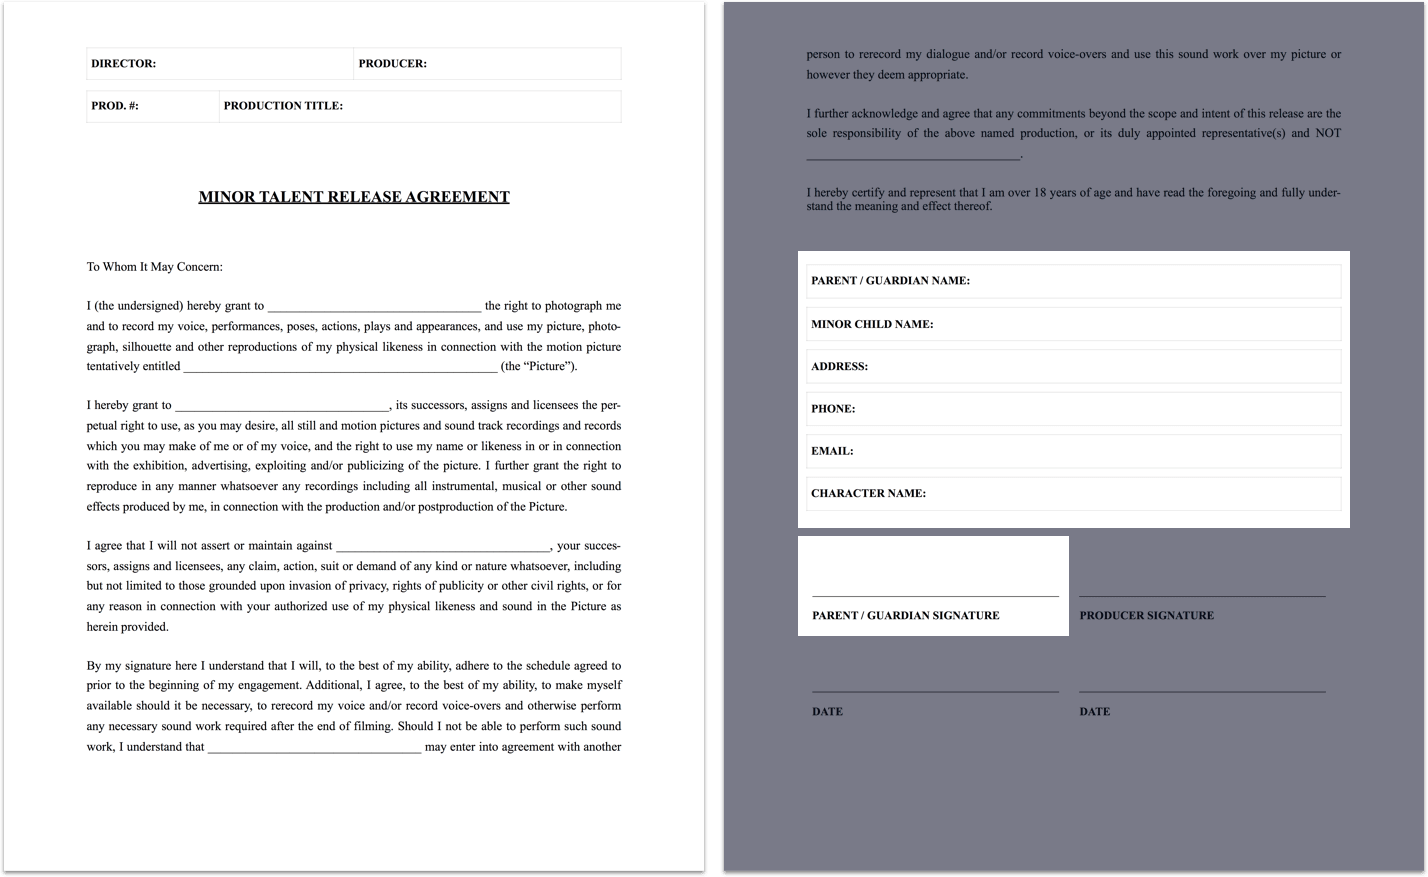 The Complete Guide To Actor Release Forms (FREE Template) Actor Release Form  For Minors StudioBinder Complete Guide Actor Release Form Template Legal ...  Legal Release Form Template